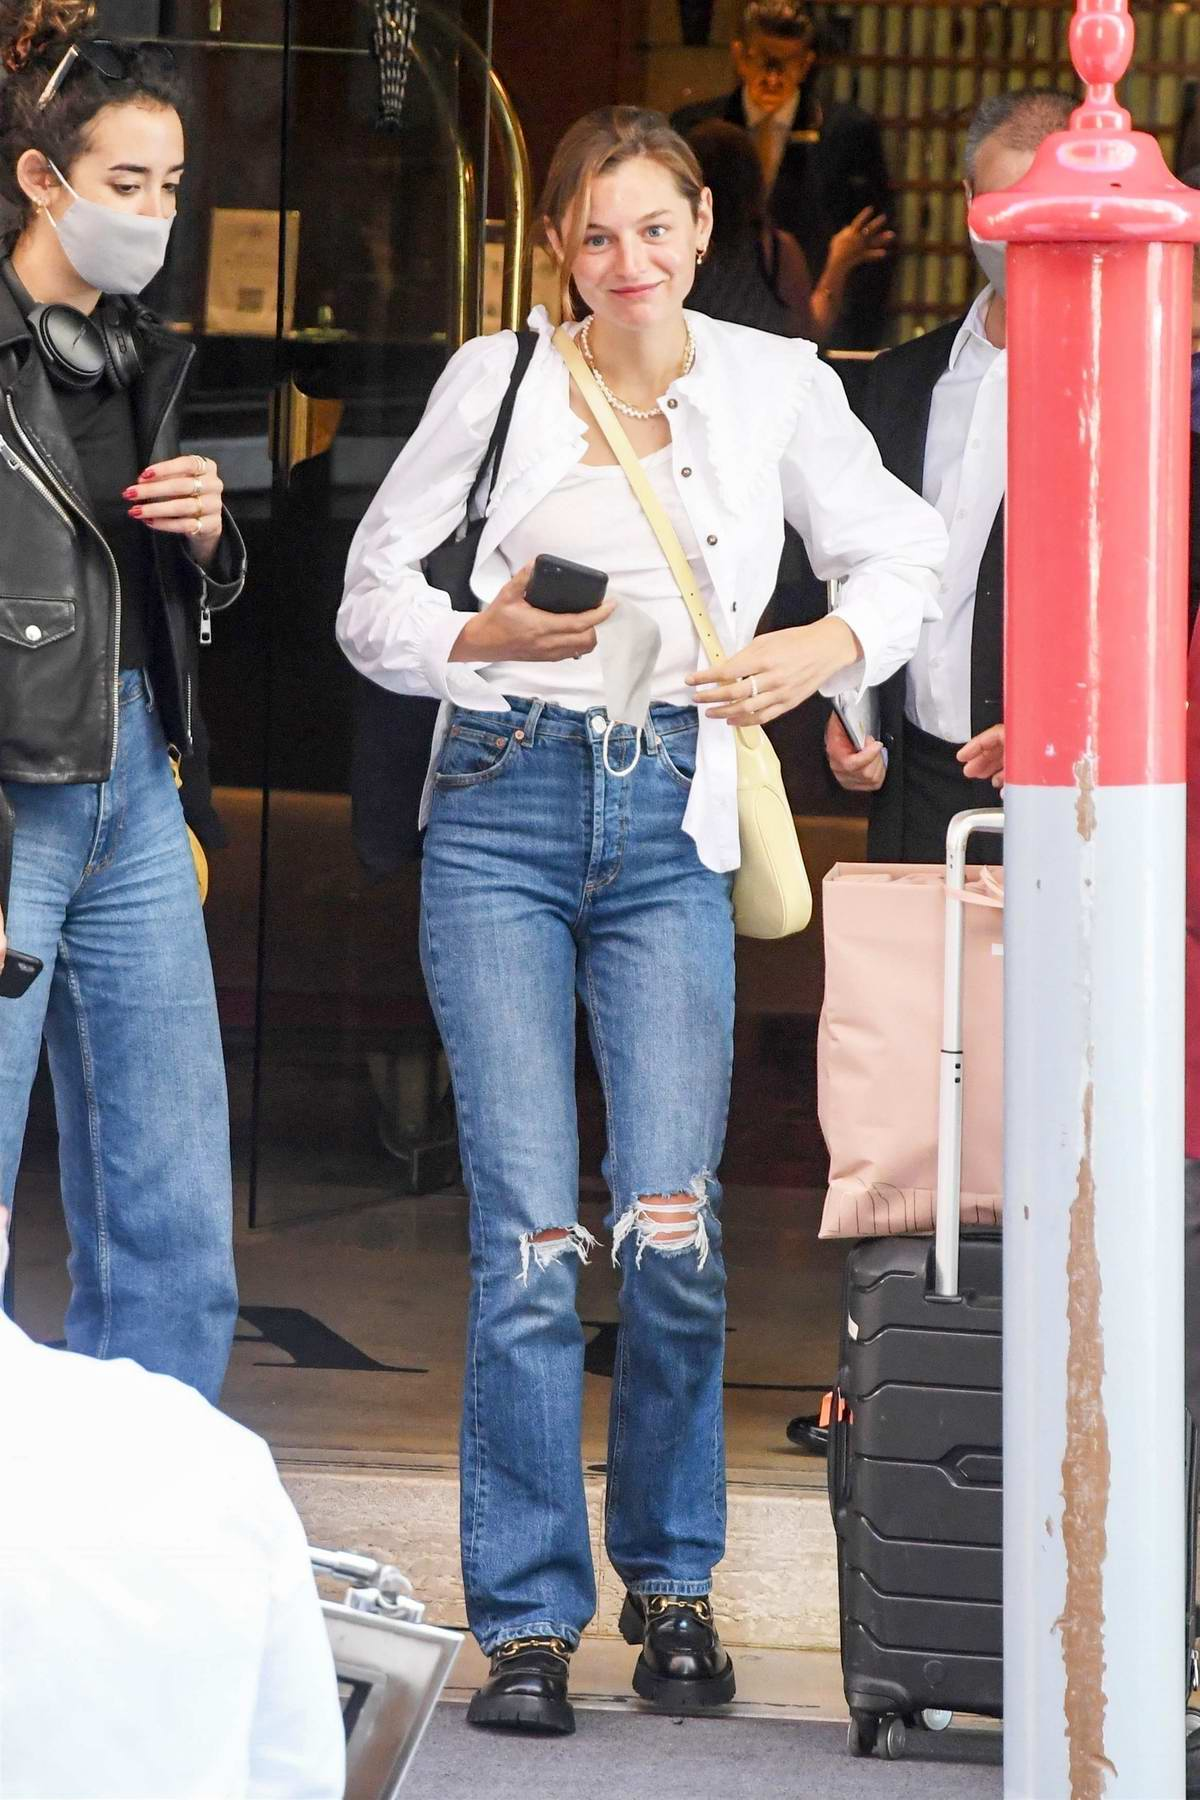 Emma Corrin seen leaving her hotel after attending the 77th Venice Film Festival in Venice, Italy